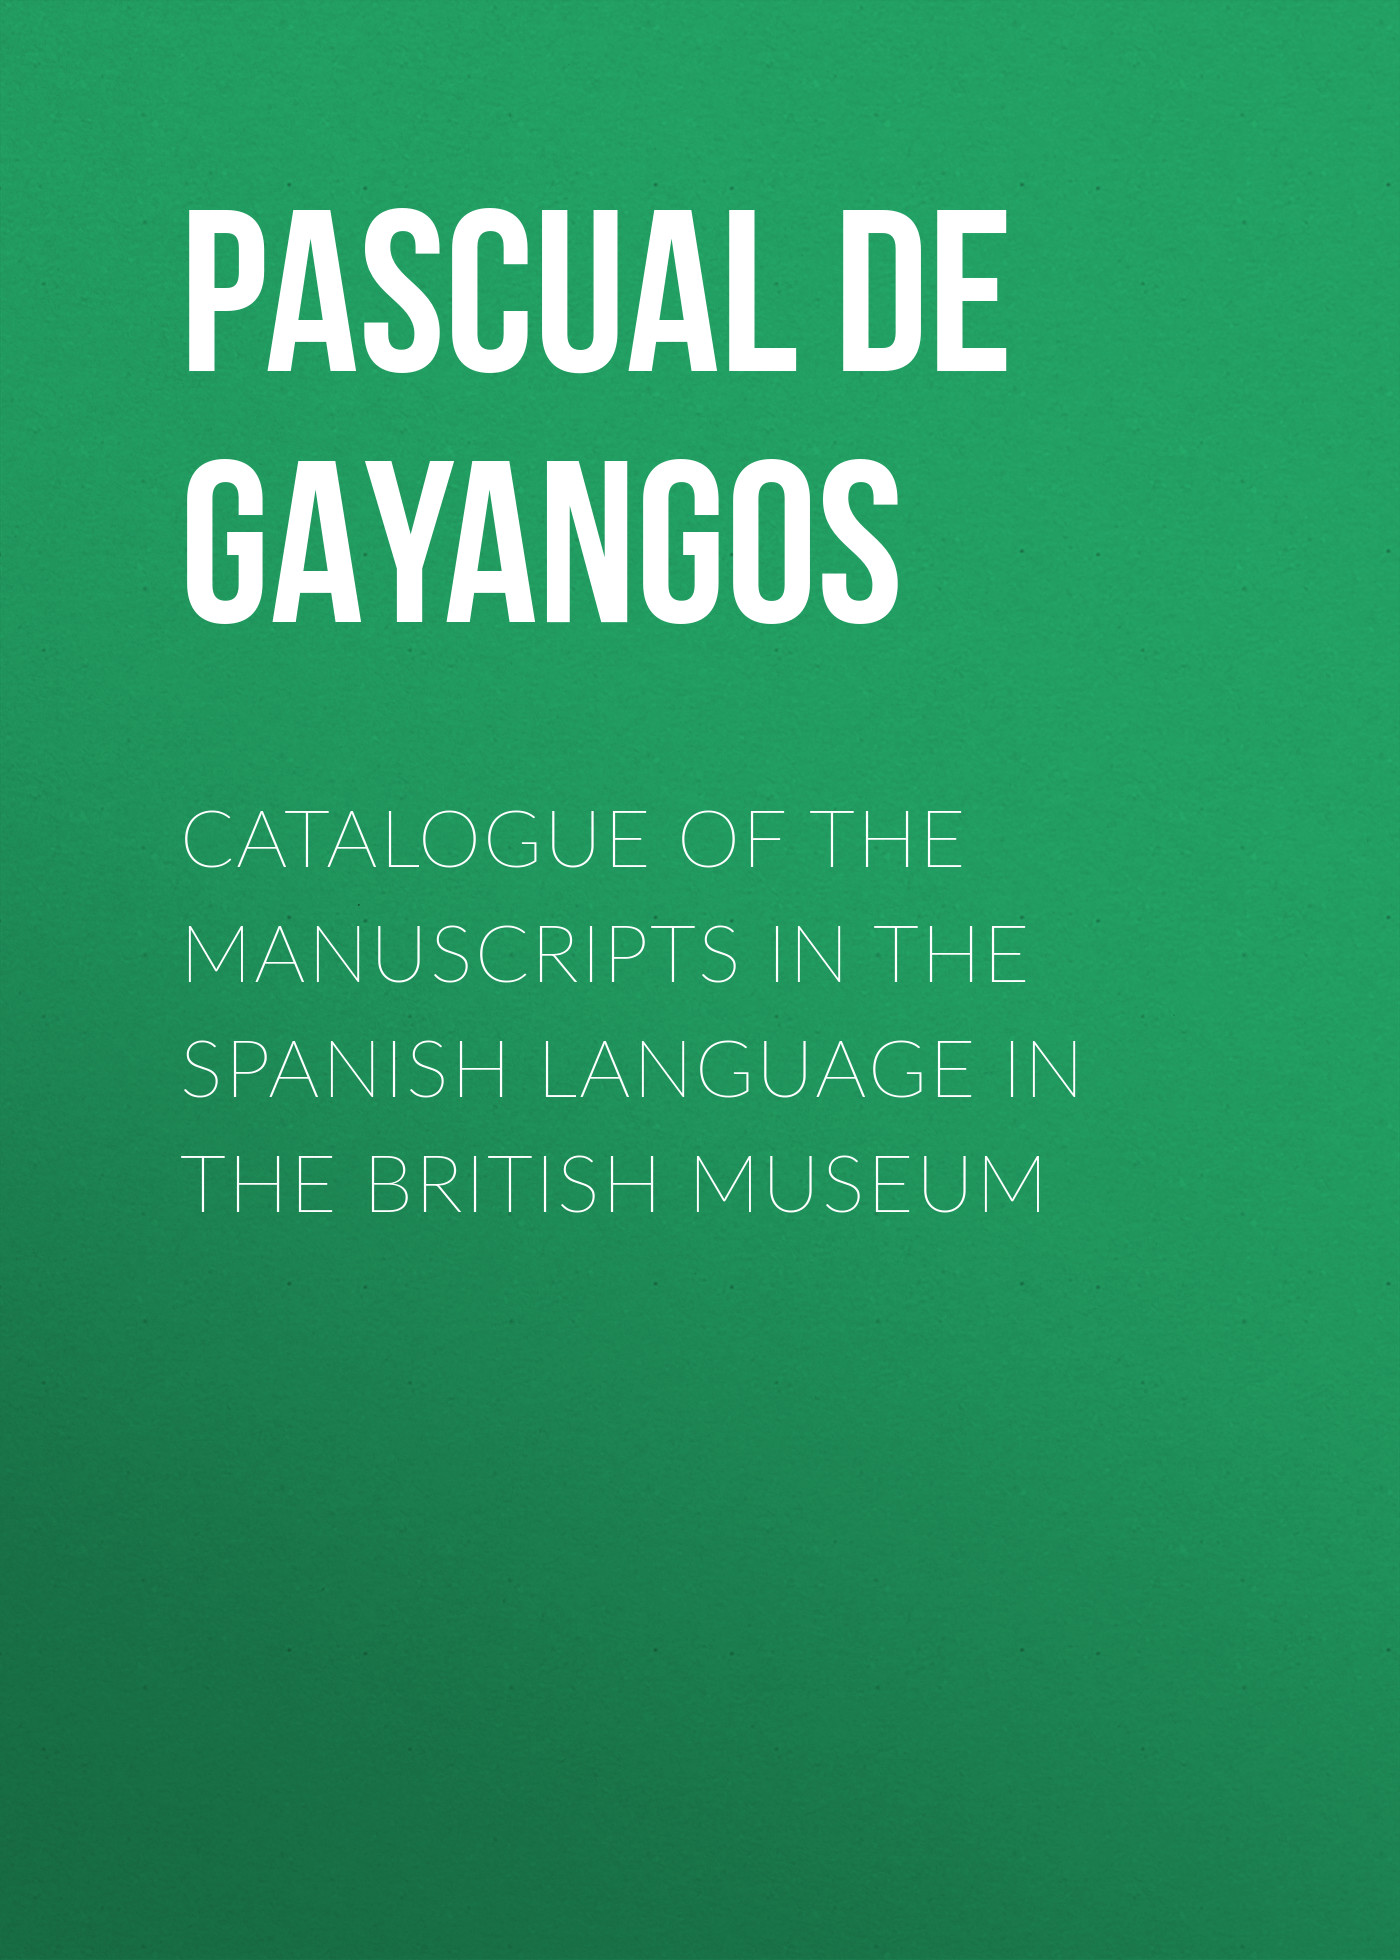 Pascual de Gayangos Catalogue of the Manuscripts in the Spanish Language in the British Museum wireless wired alarm systems security home lcd speaker keyboard sensor gsm alarm system russian spanish french language